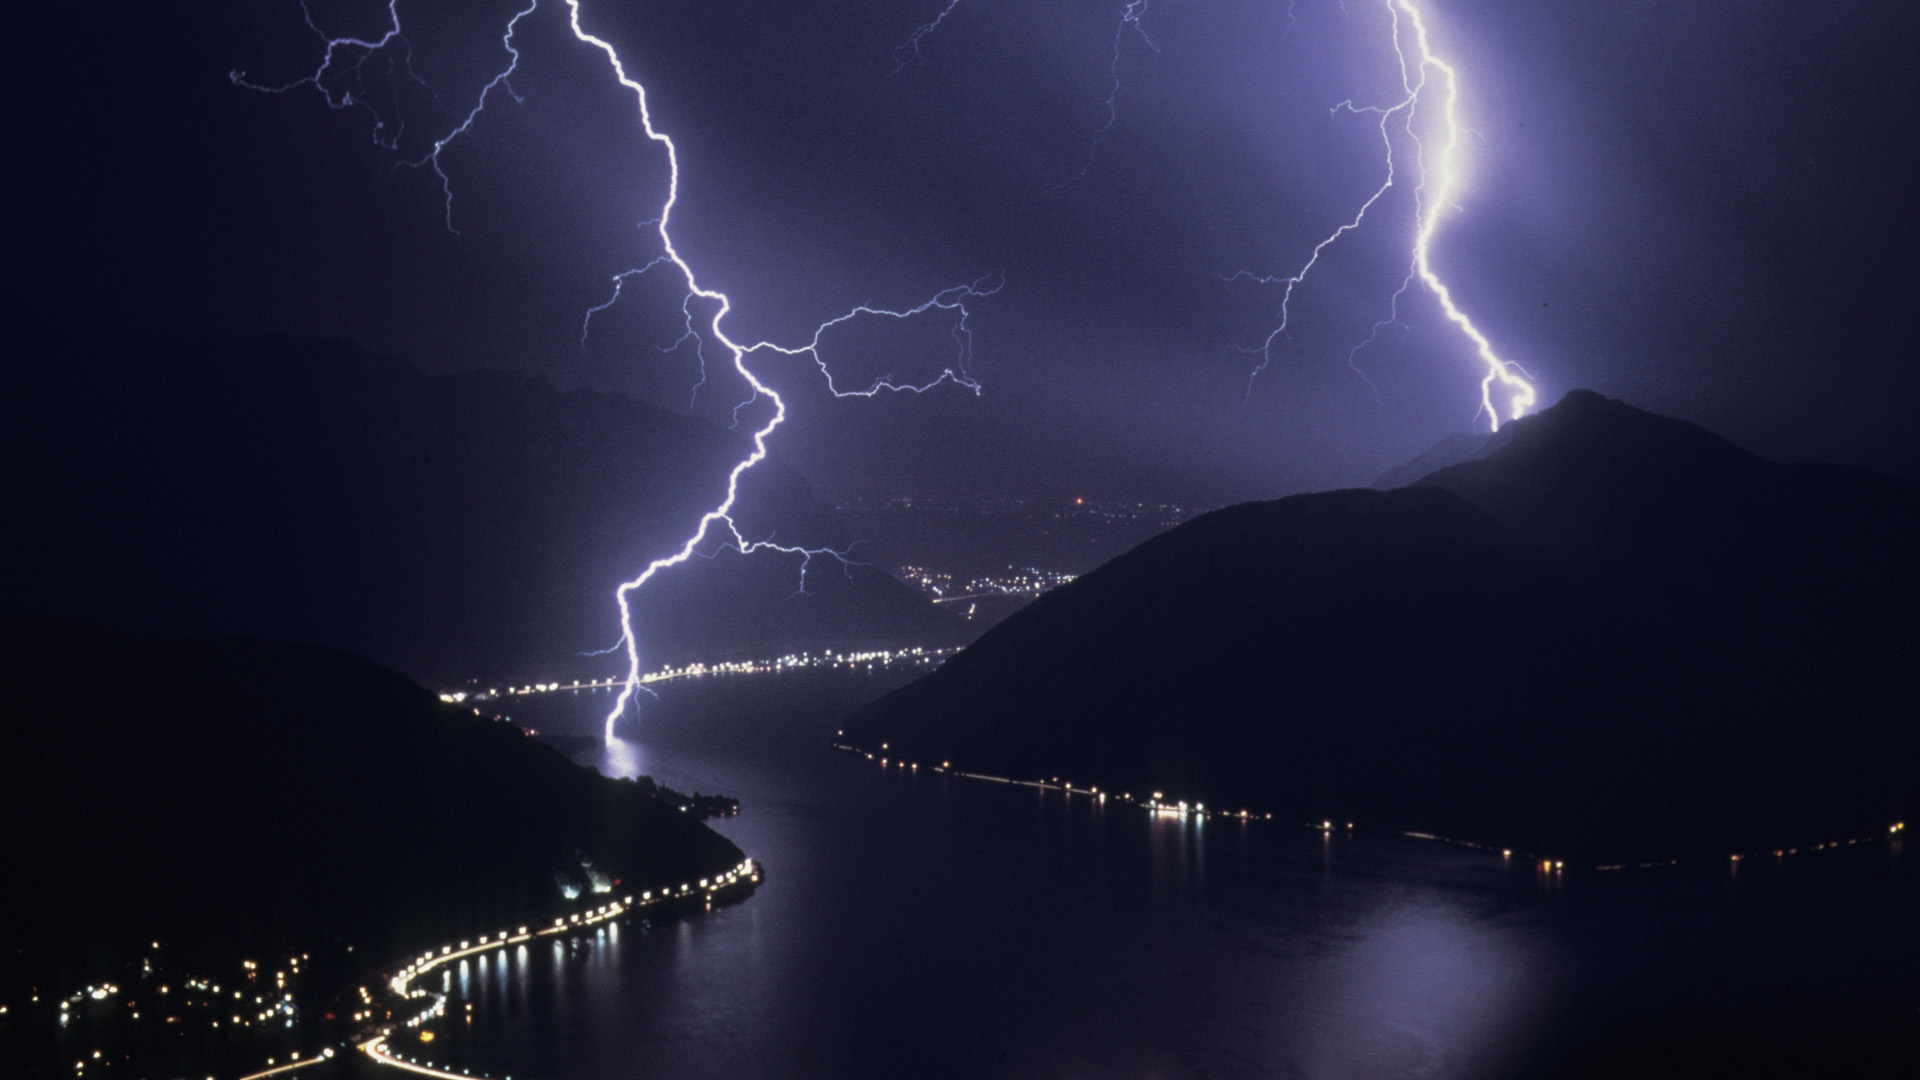 Desktop lightning hd wallpapers photos download wallpaper download voltagebd Image collections